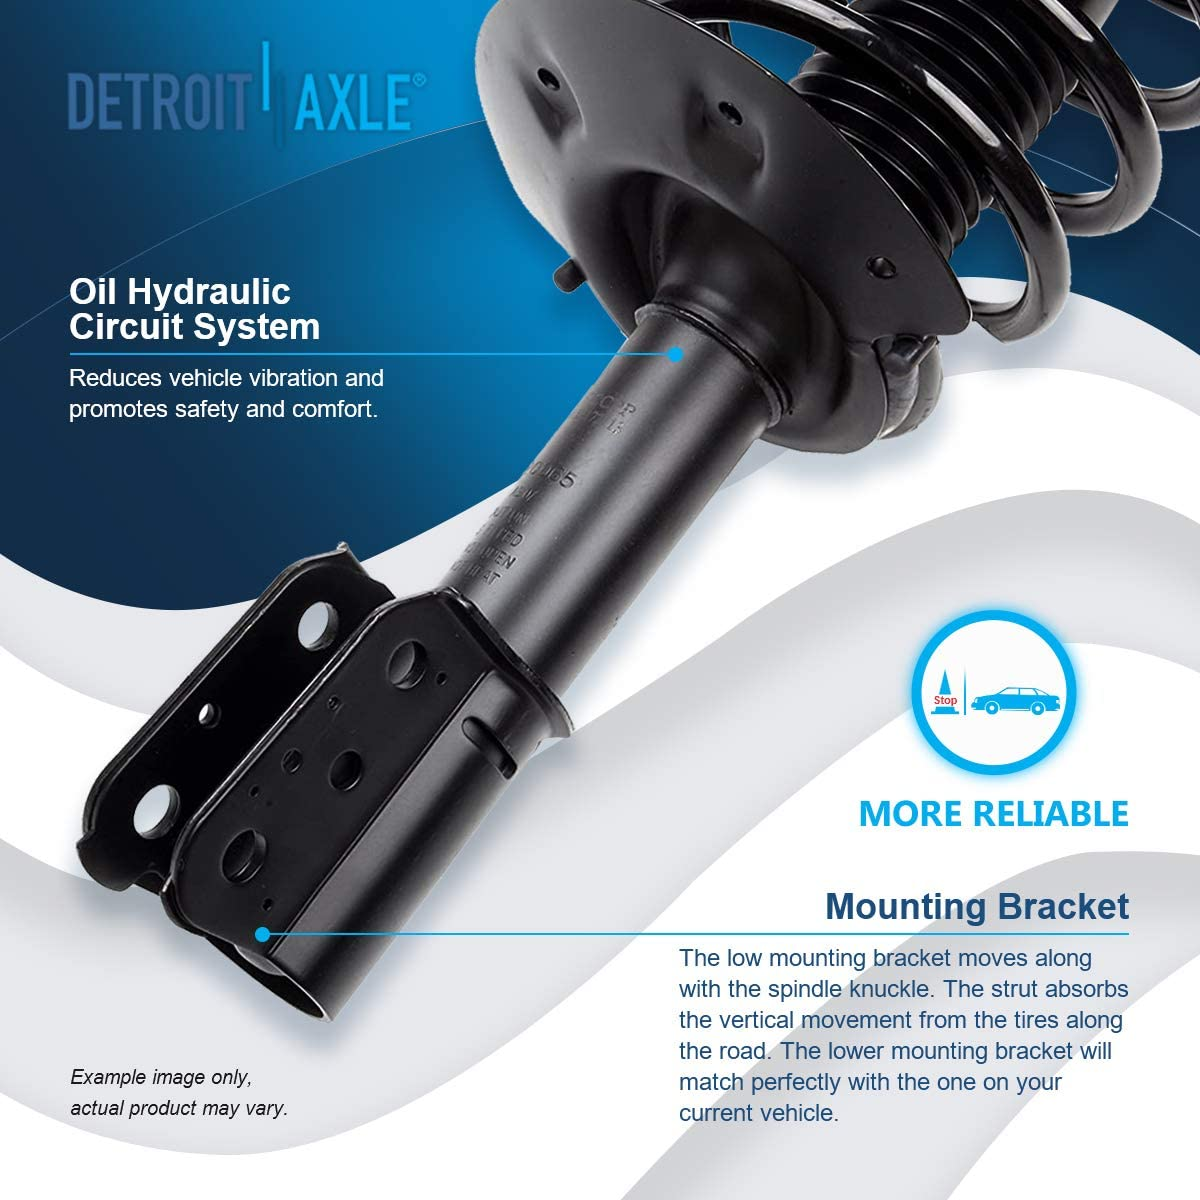 // 2001-2004 Pontiac Aztek AWD Only Front Struts w//Coil Spring /& Rear Shock Absorbers for 2002-2006 Buick Rendezvous Detroit Axle Exc. Automatic Leveling Suspension